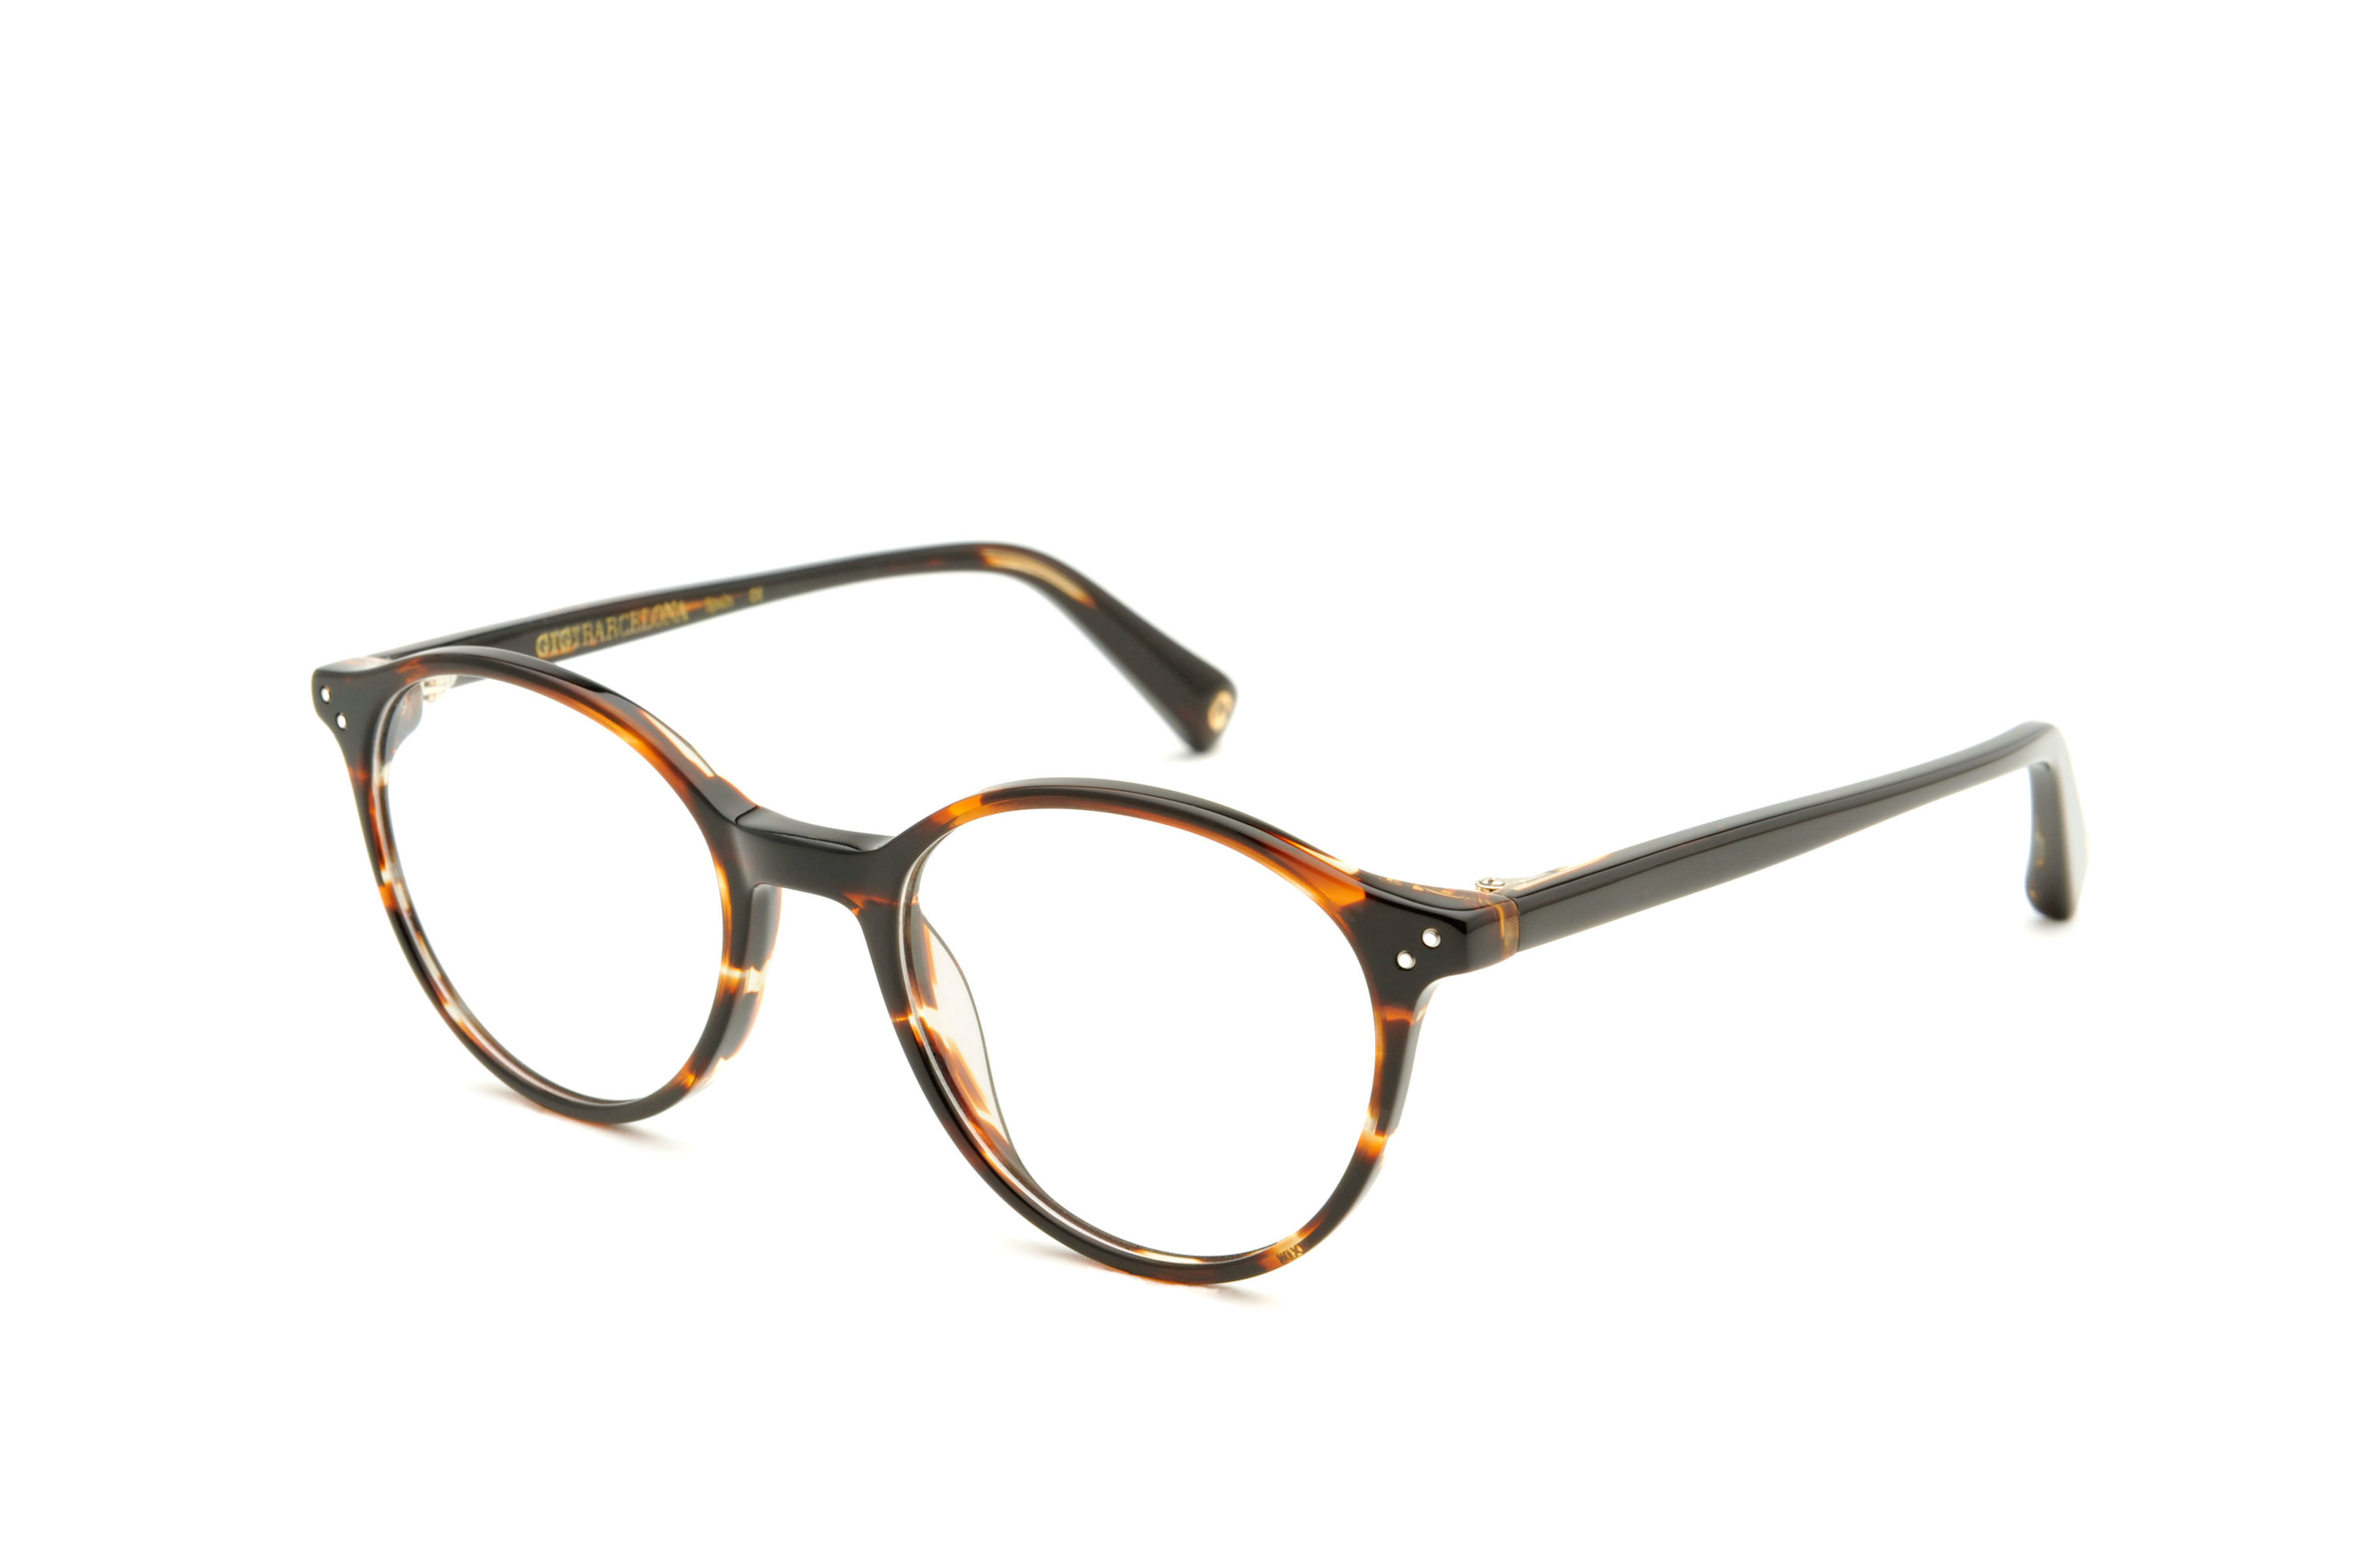 Brooks acetate rounded brown sunglasses by GIGI Studios